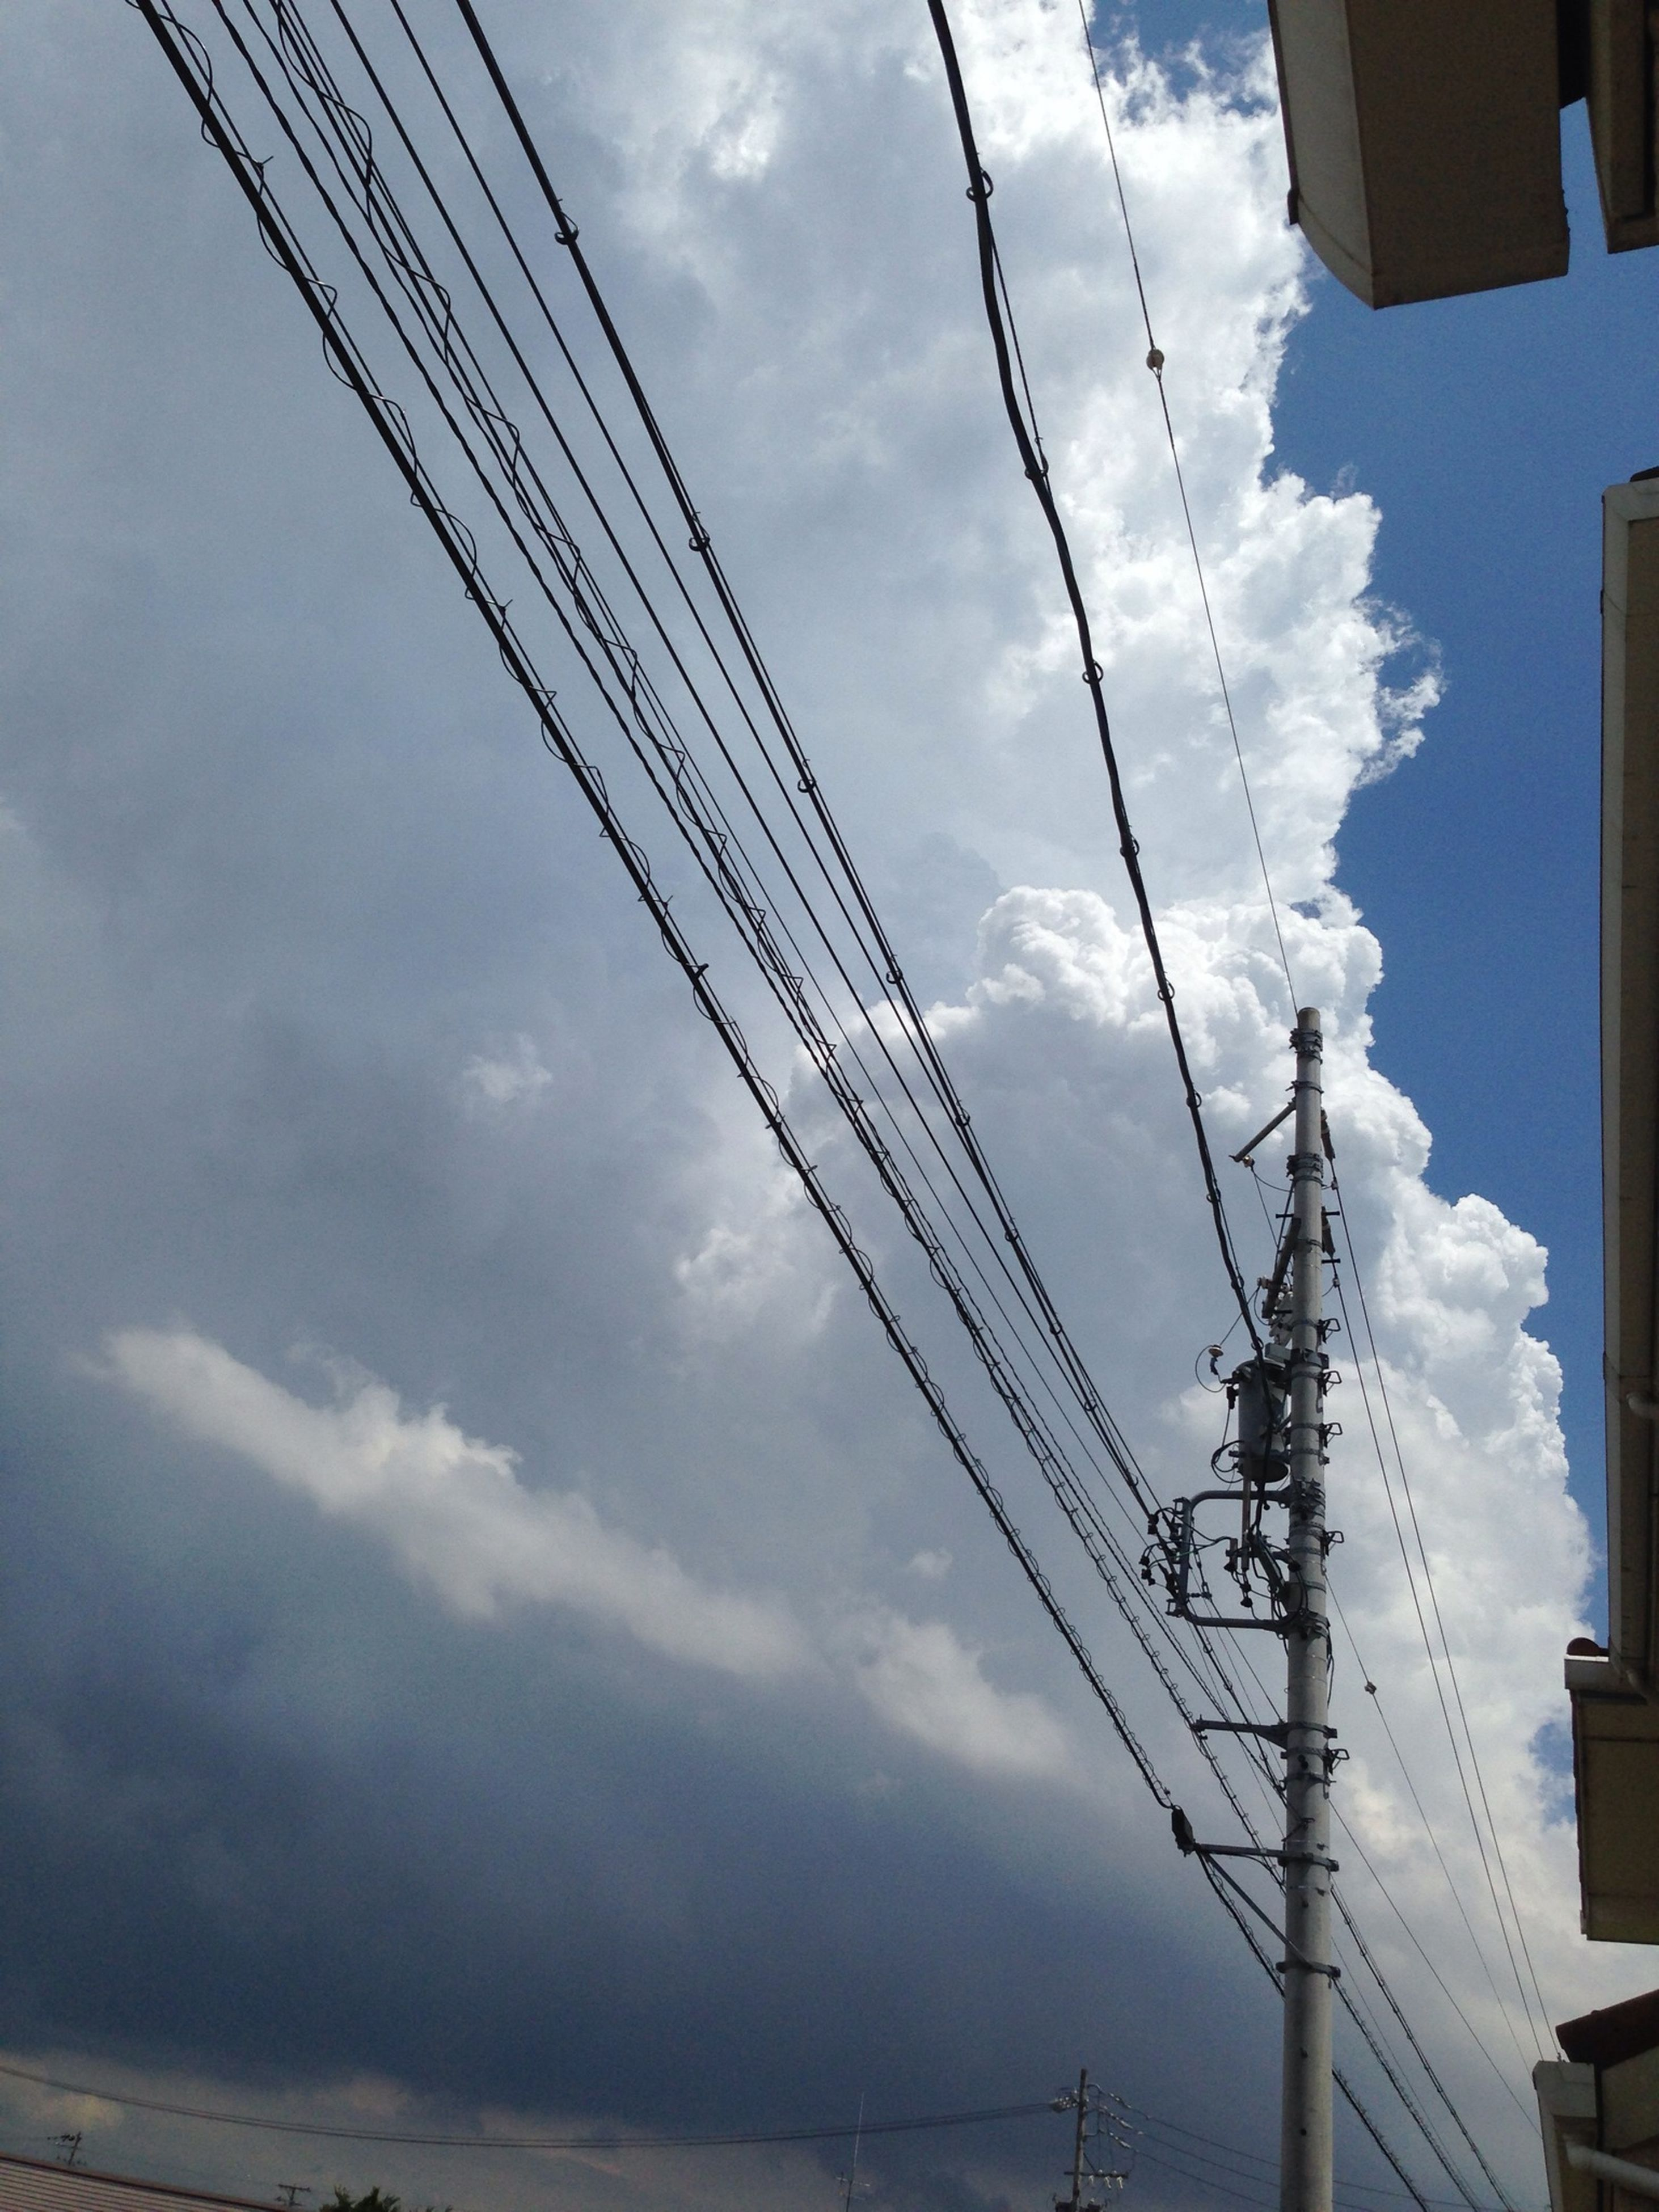 power line, electricity pylon, power supply, electricity, sky, cable, connection, fuel and power generation, low angle view, cloud - sky, technology, cloudy, cloud, built structure, power cable, architecture, building exterior, outdoors, day, no people